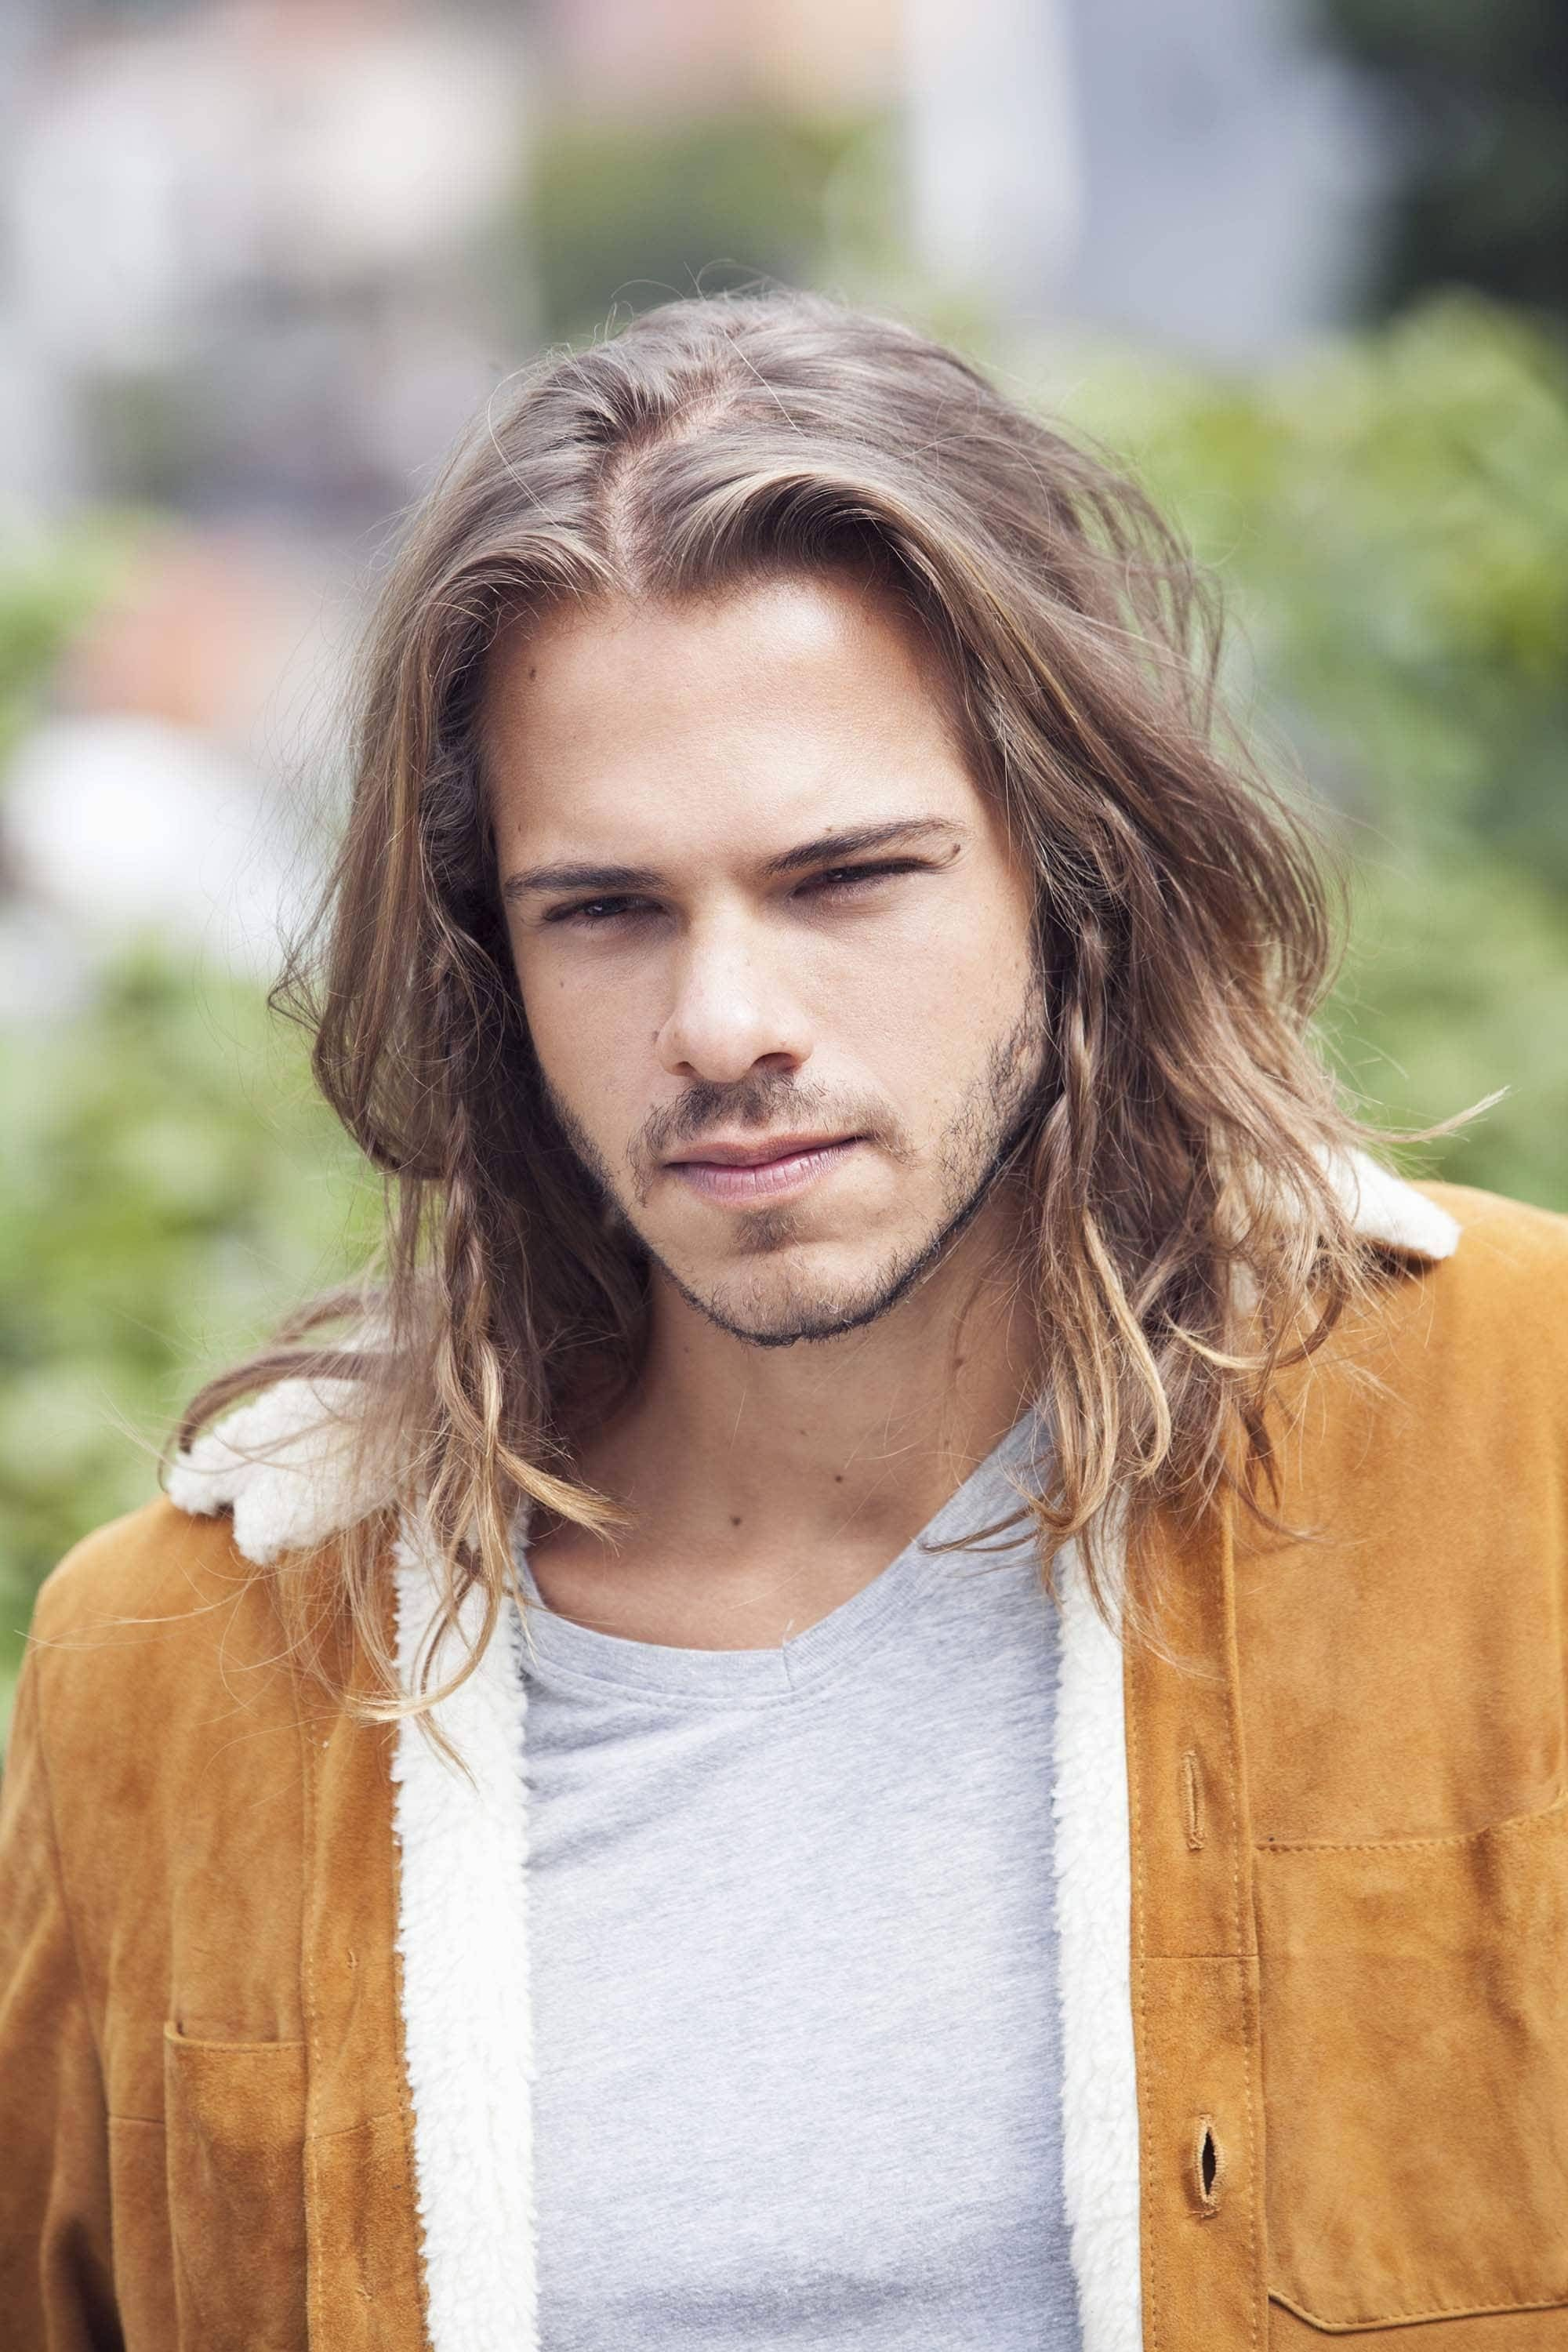 Edgy long hairstyles men can pull off long hair styles